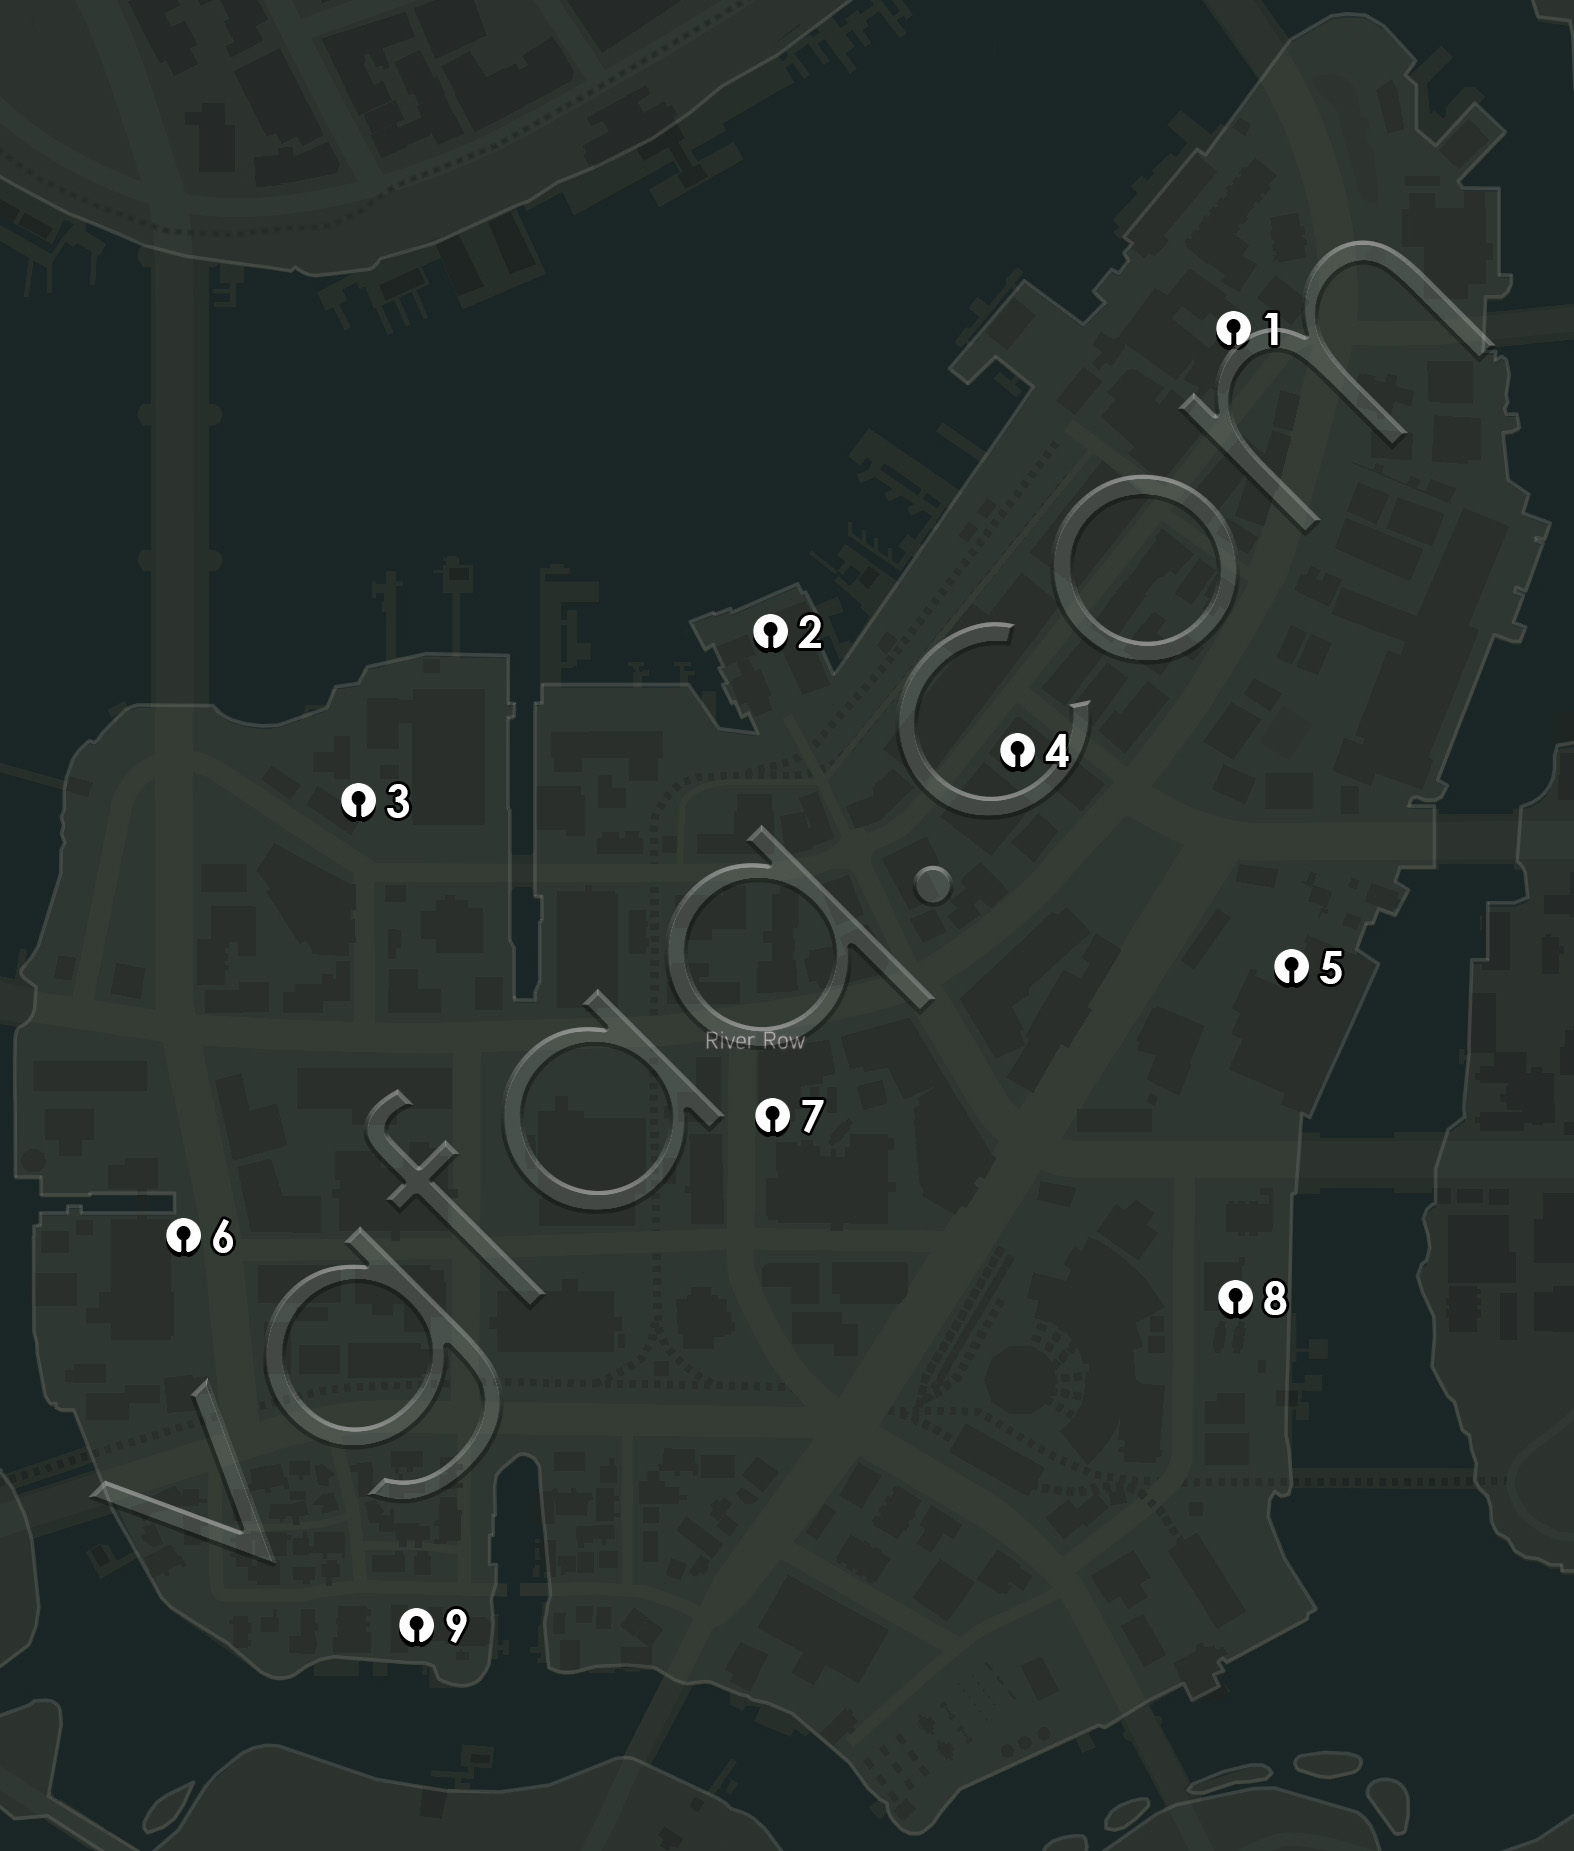 Mafia 3 River Row Junction Boxes mafia 3 junction boxes locations guide vgfaq french fuse box at n-0.co